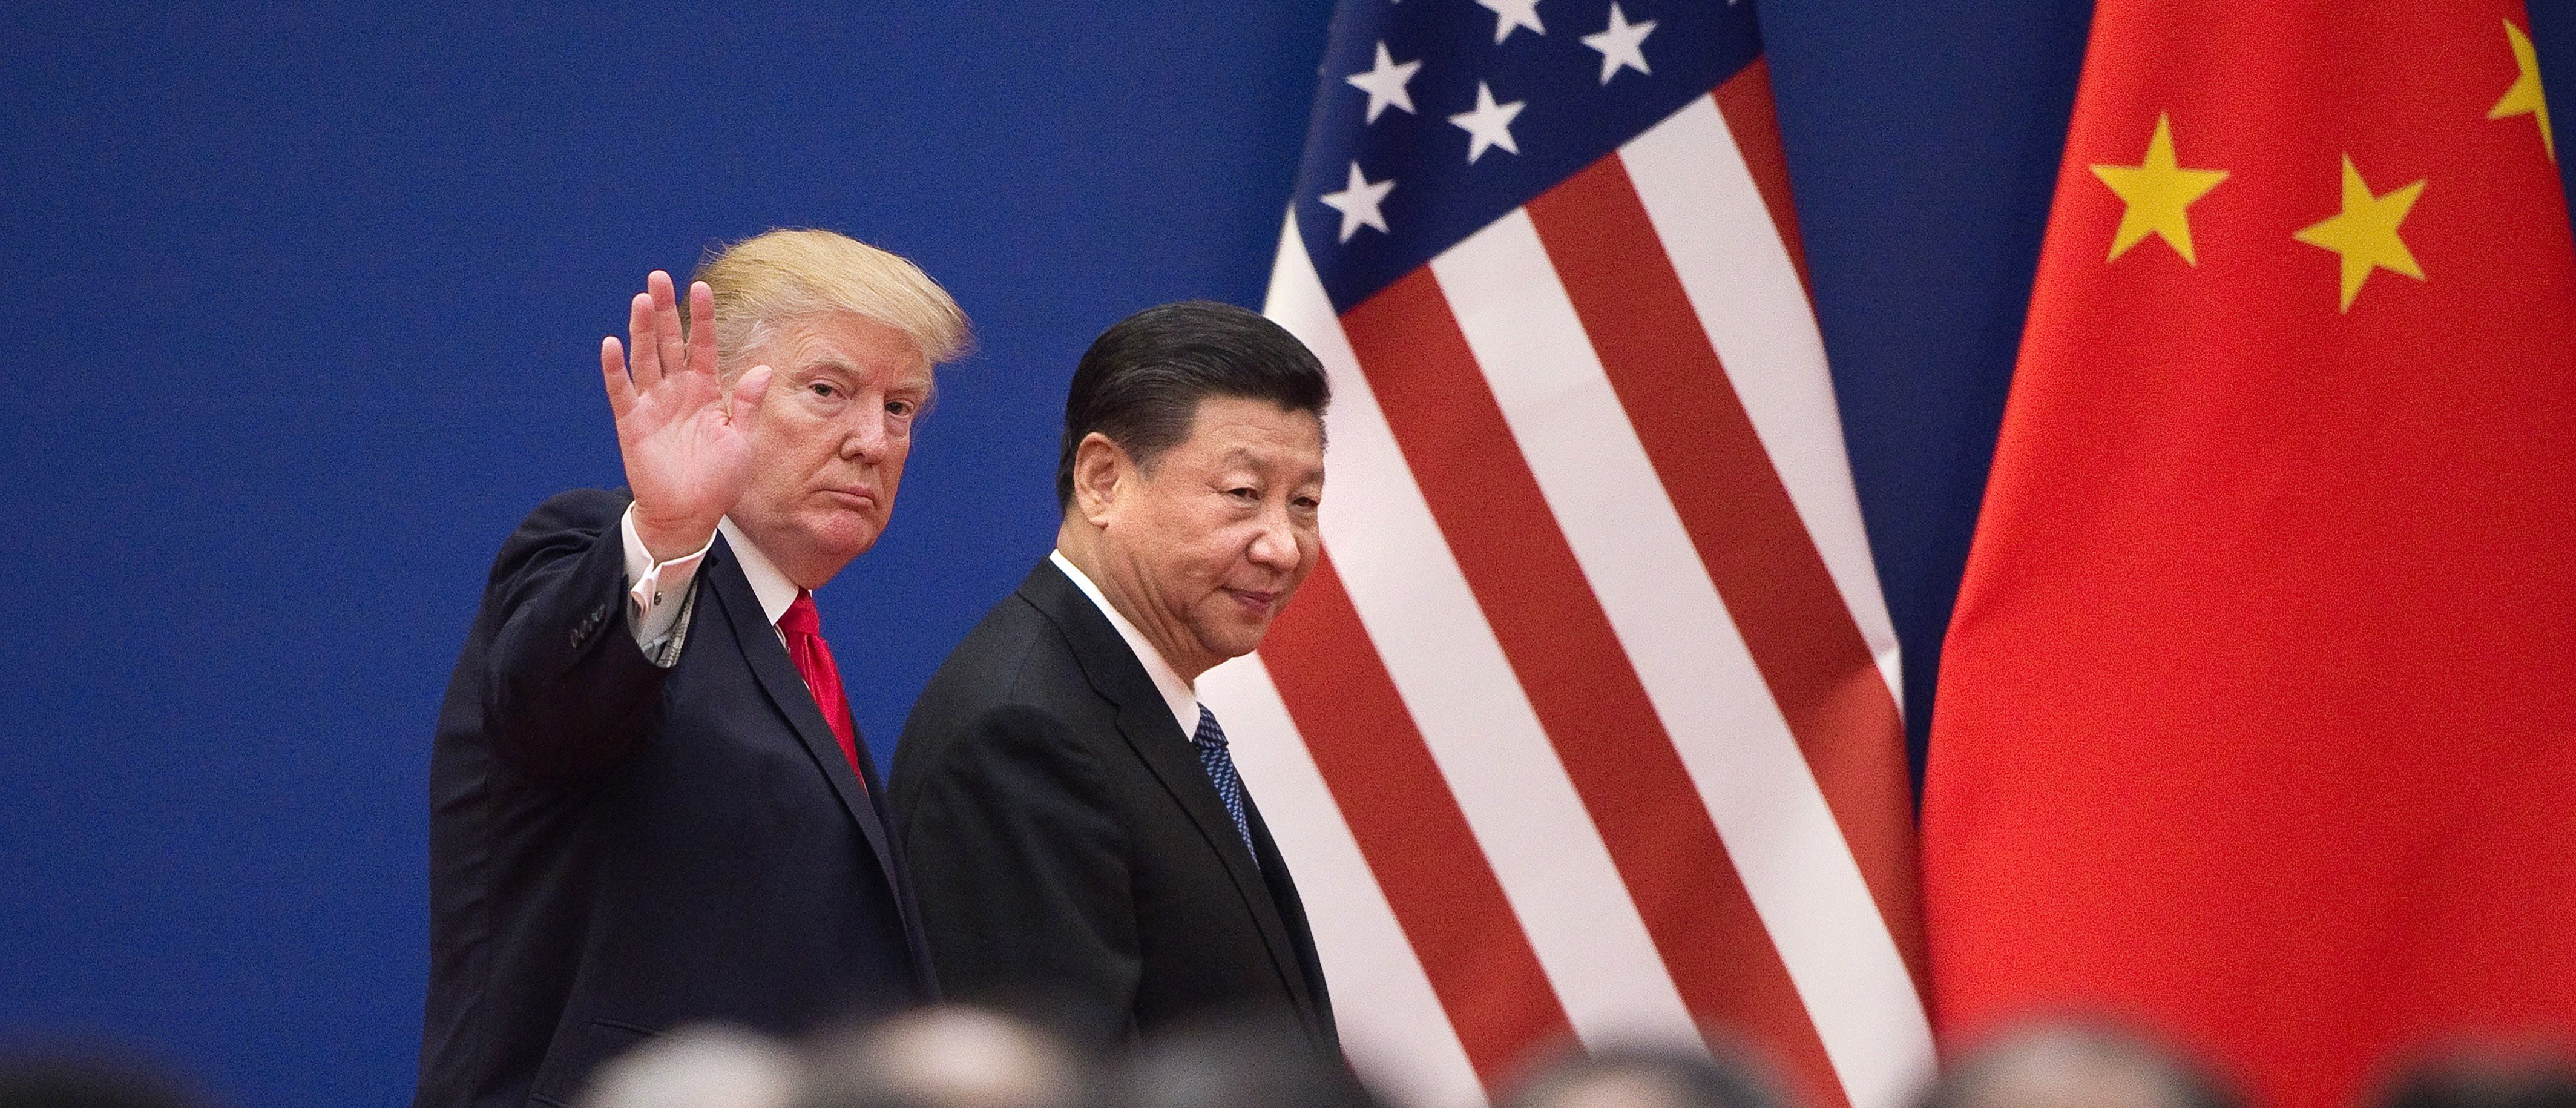 """TOPSHOT - US President Donald Trump (L) and China's President Xi Jinping leave a business leaders event at the Great Hall of the People in Beijing on November 9, 2017. Donald Trump urged Chinese leader Xi Jinping to work """"hard"""" and act fast to help resolve the North Korean nuclear crisis, during their meeting in Beijing on November 9, warning that """"time is quickly running out"""". / AFP PHOTO / Nicolas ASFOURI (Photo credit should read NICOLAS ASFOURI/AFP via Getty Images)"""